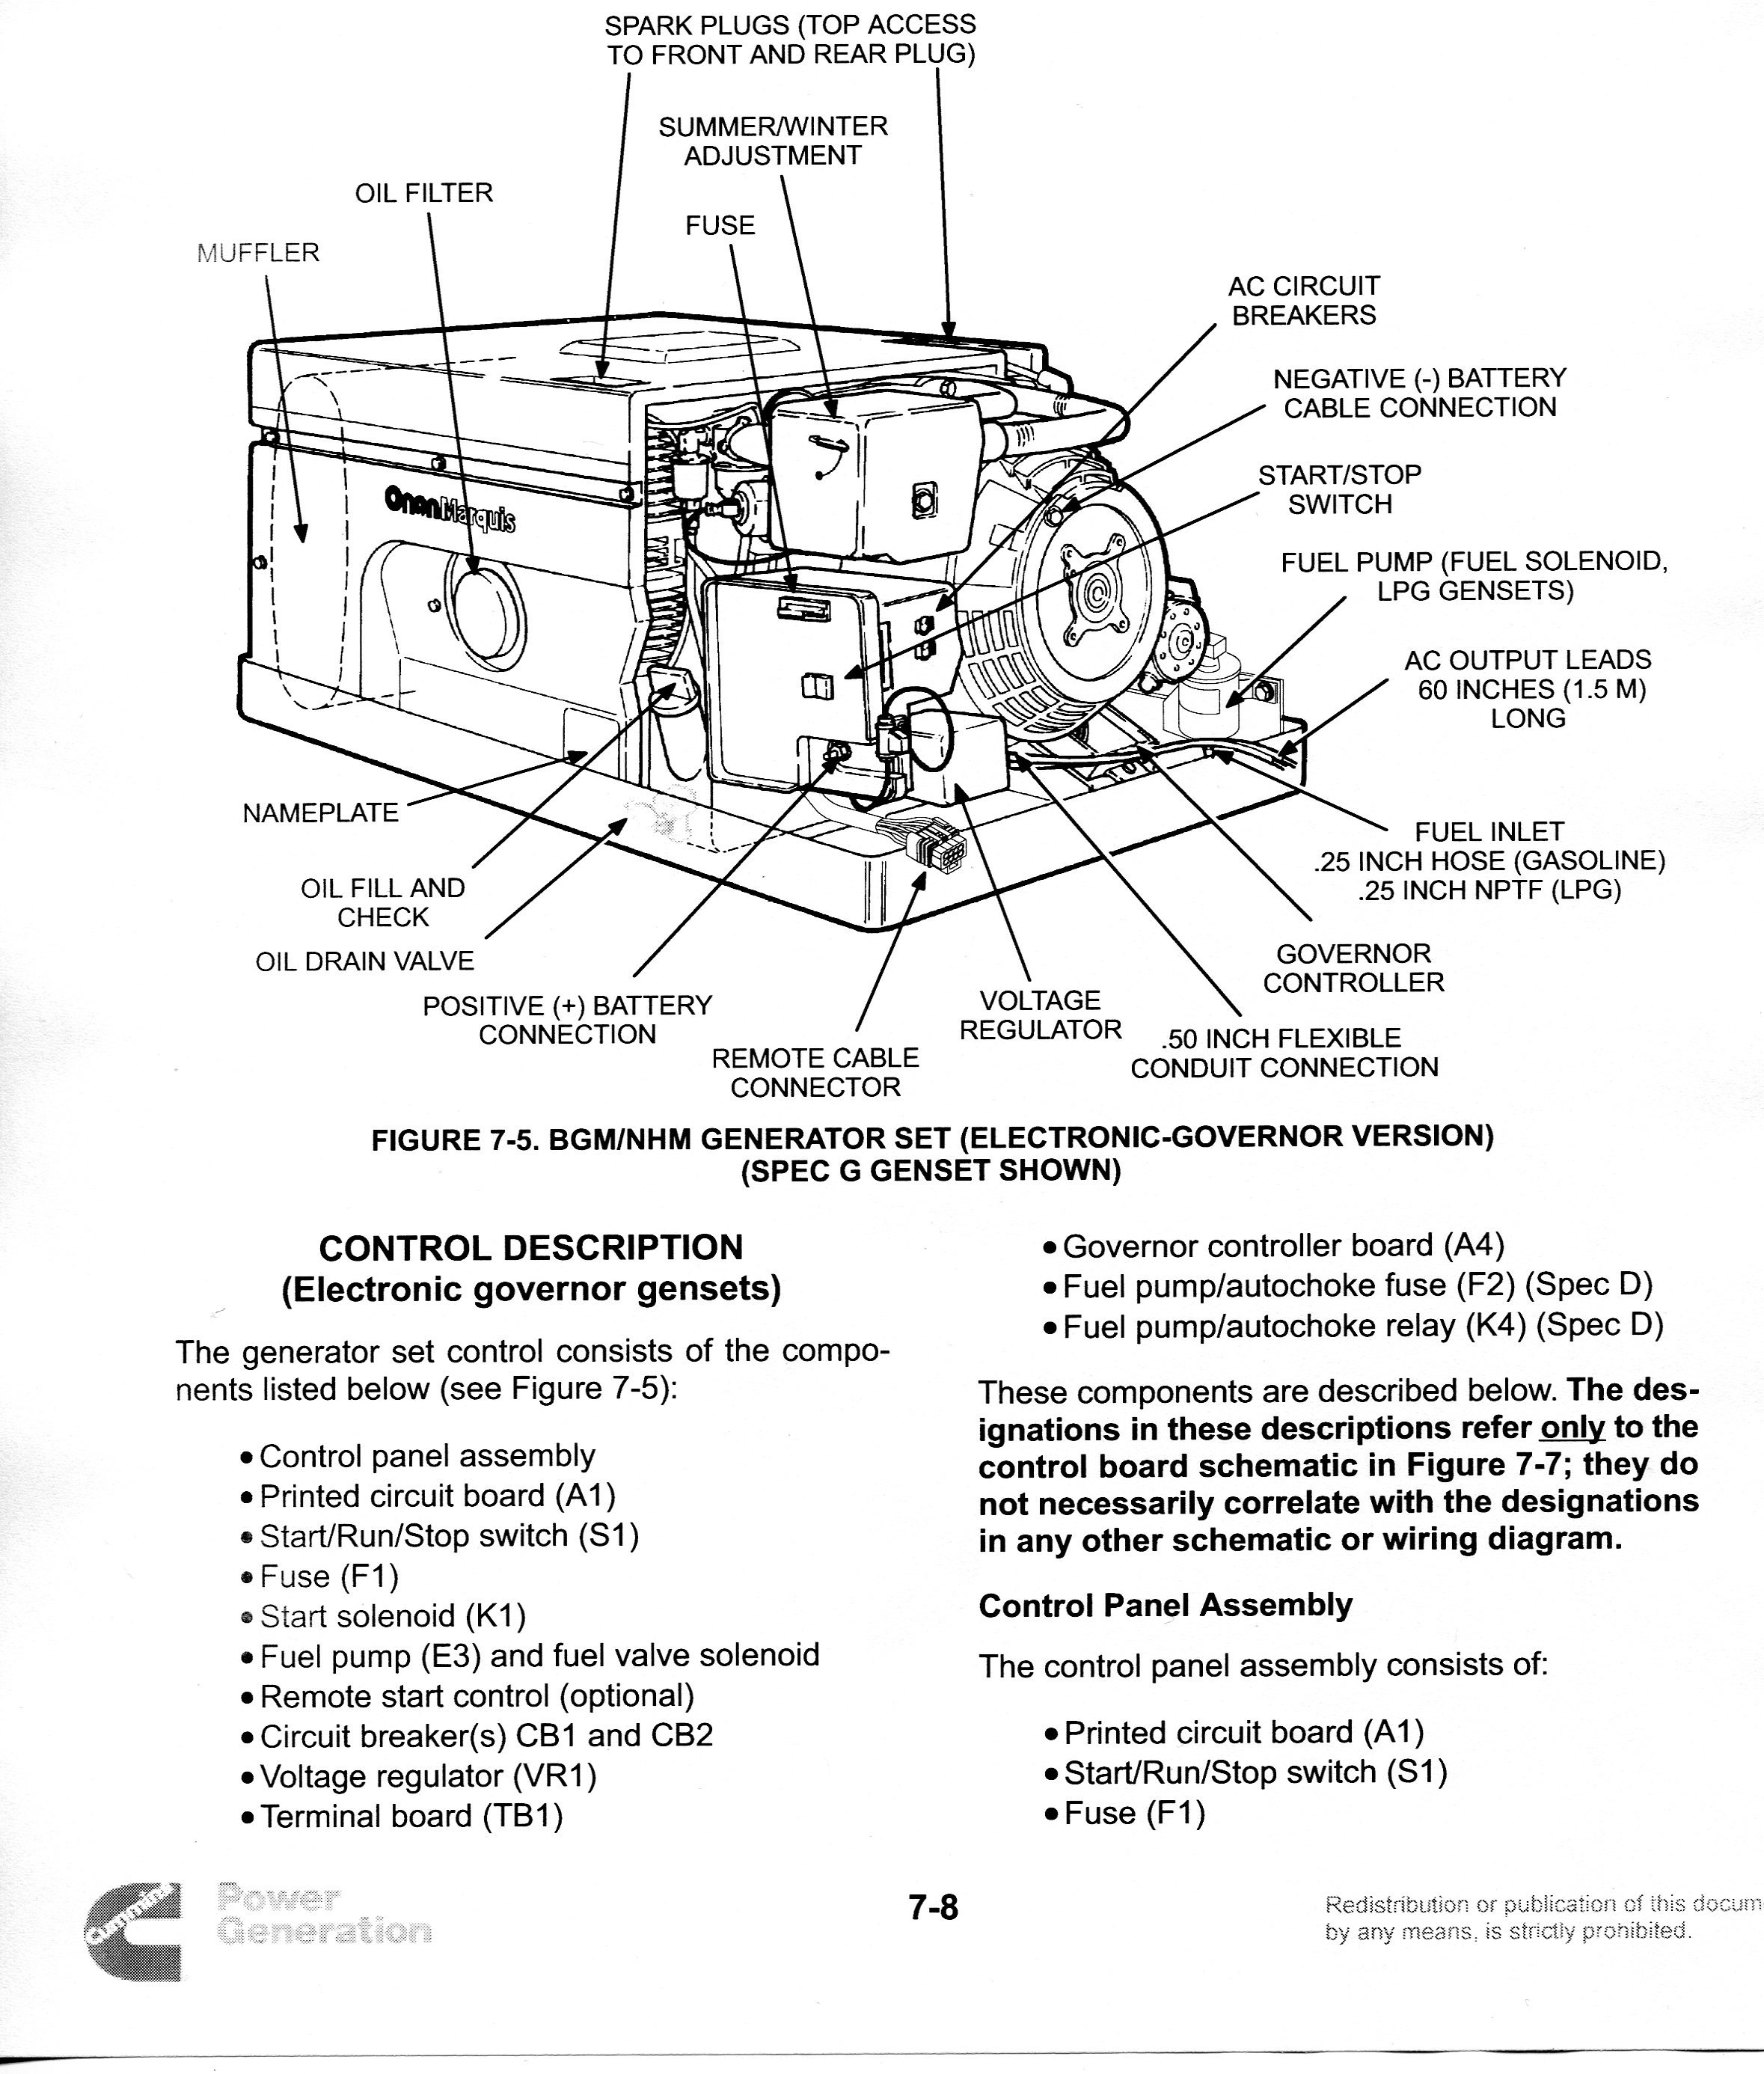 Wiring Diagram Furthermore Onan Marquis 5500 Generator Wiring Diagram